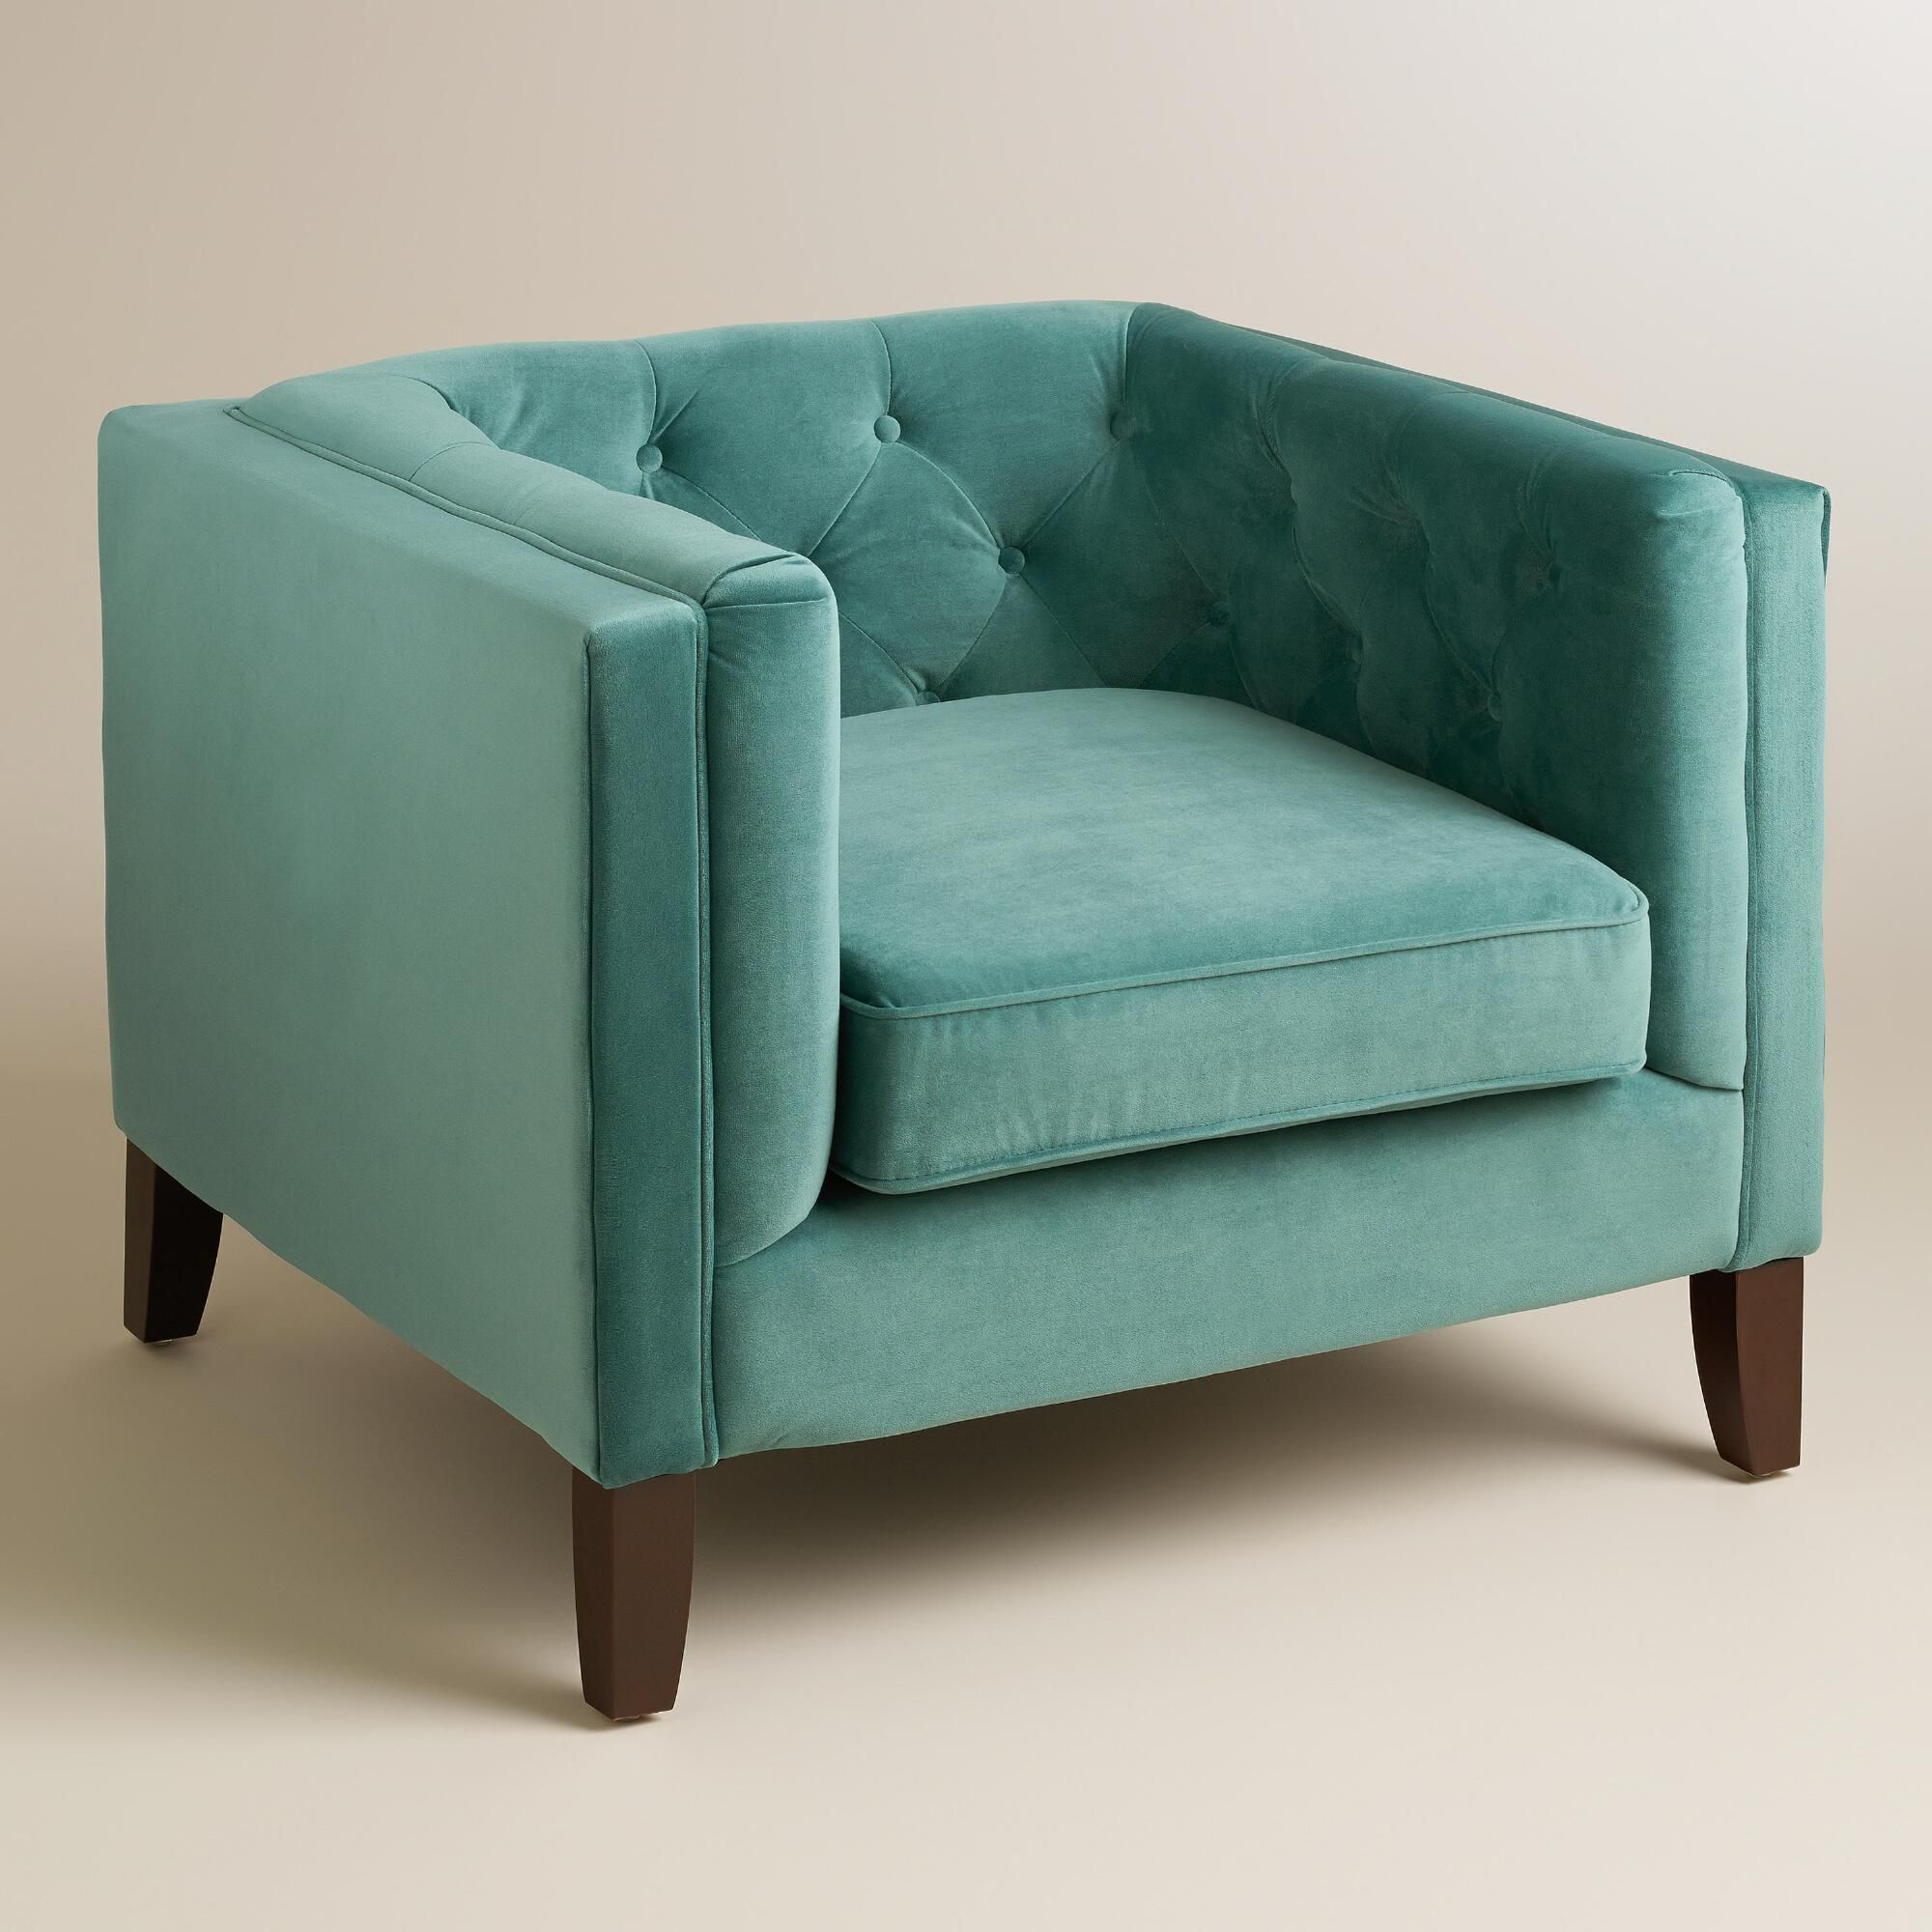 full of mid century style our teal kendall velvet chair is polished rh pinterest com